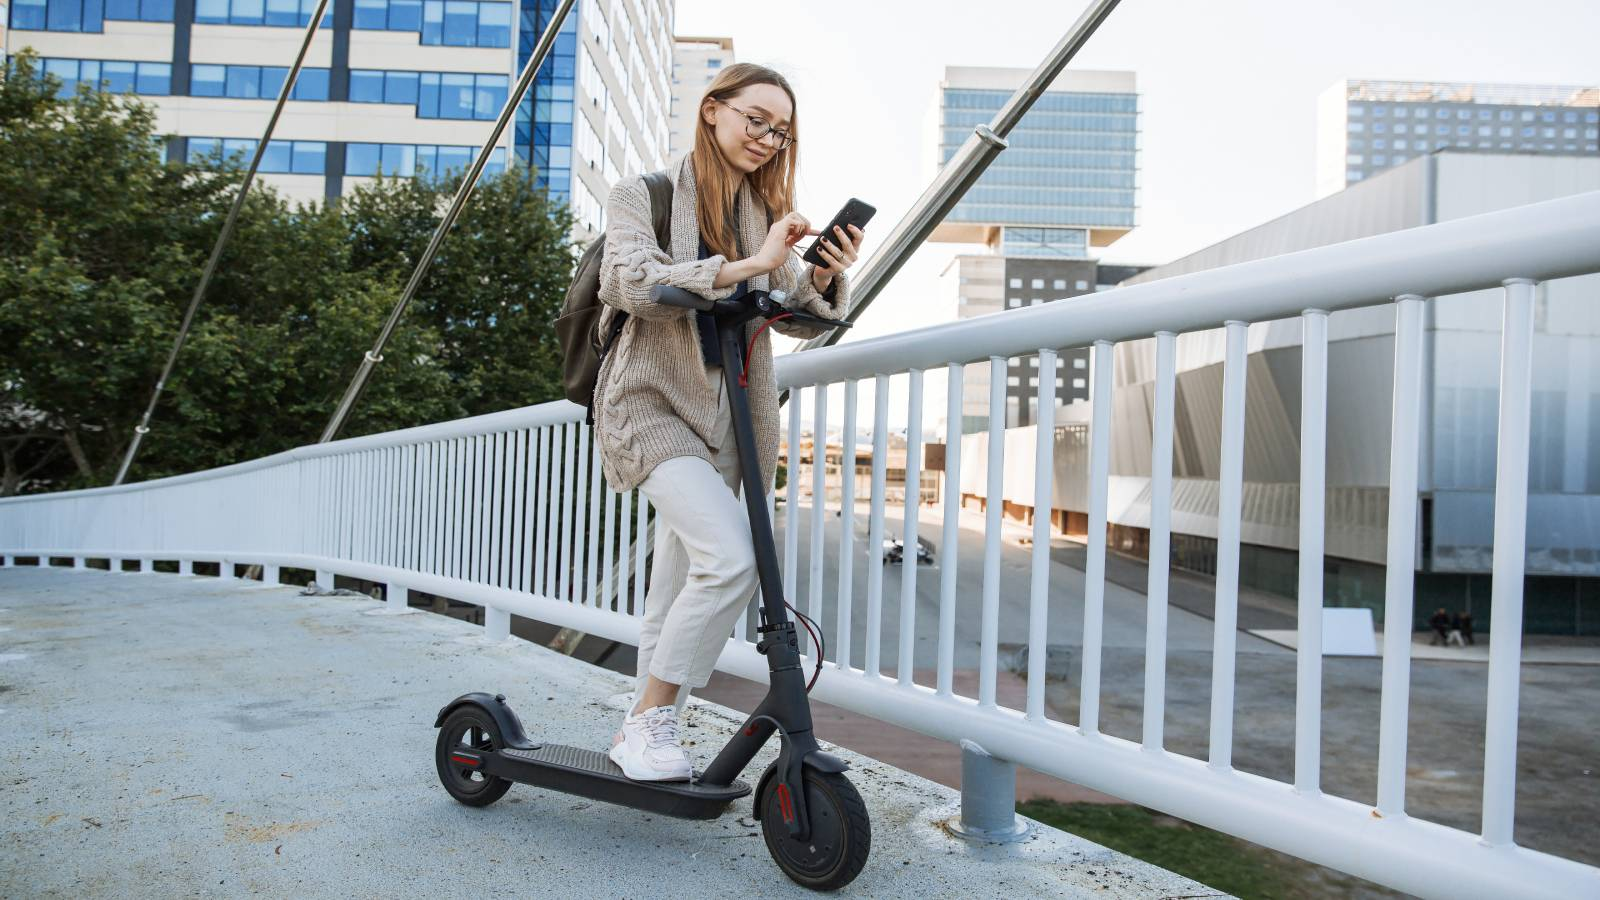 The Best Electric Scooters 2021 Great Options For Every Budget Techradar